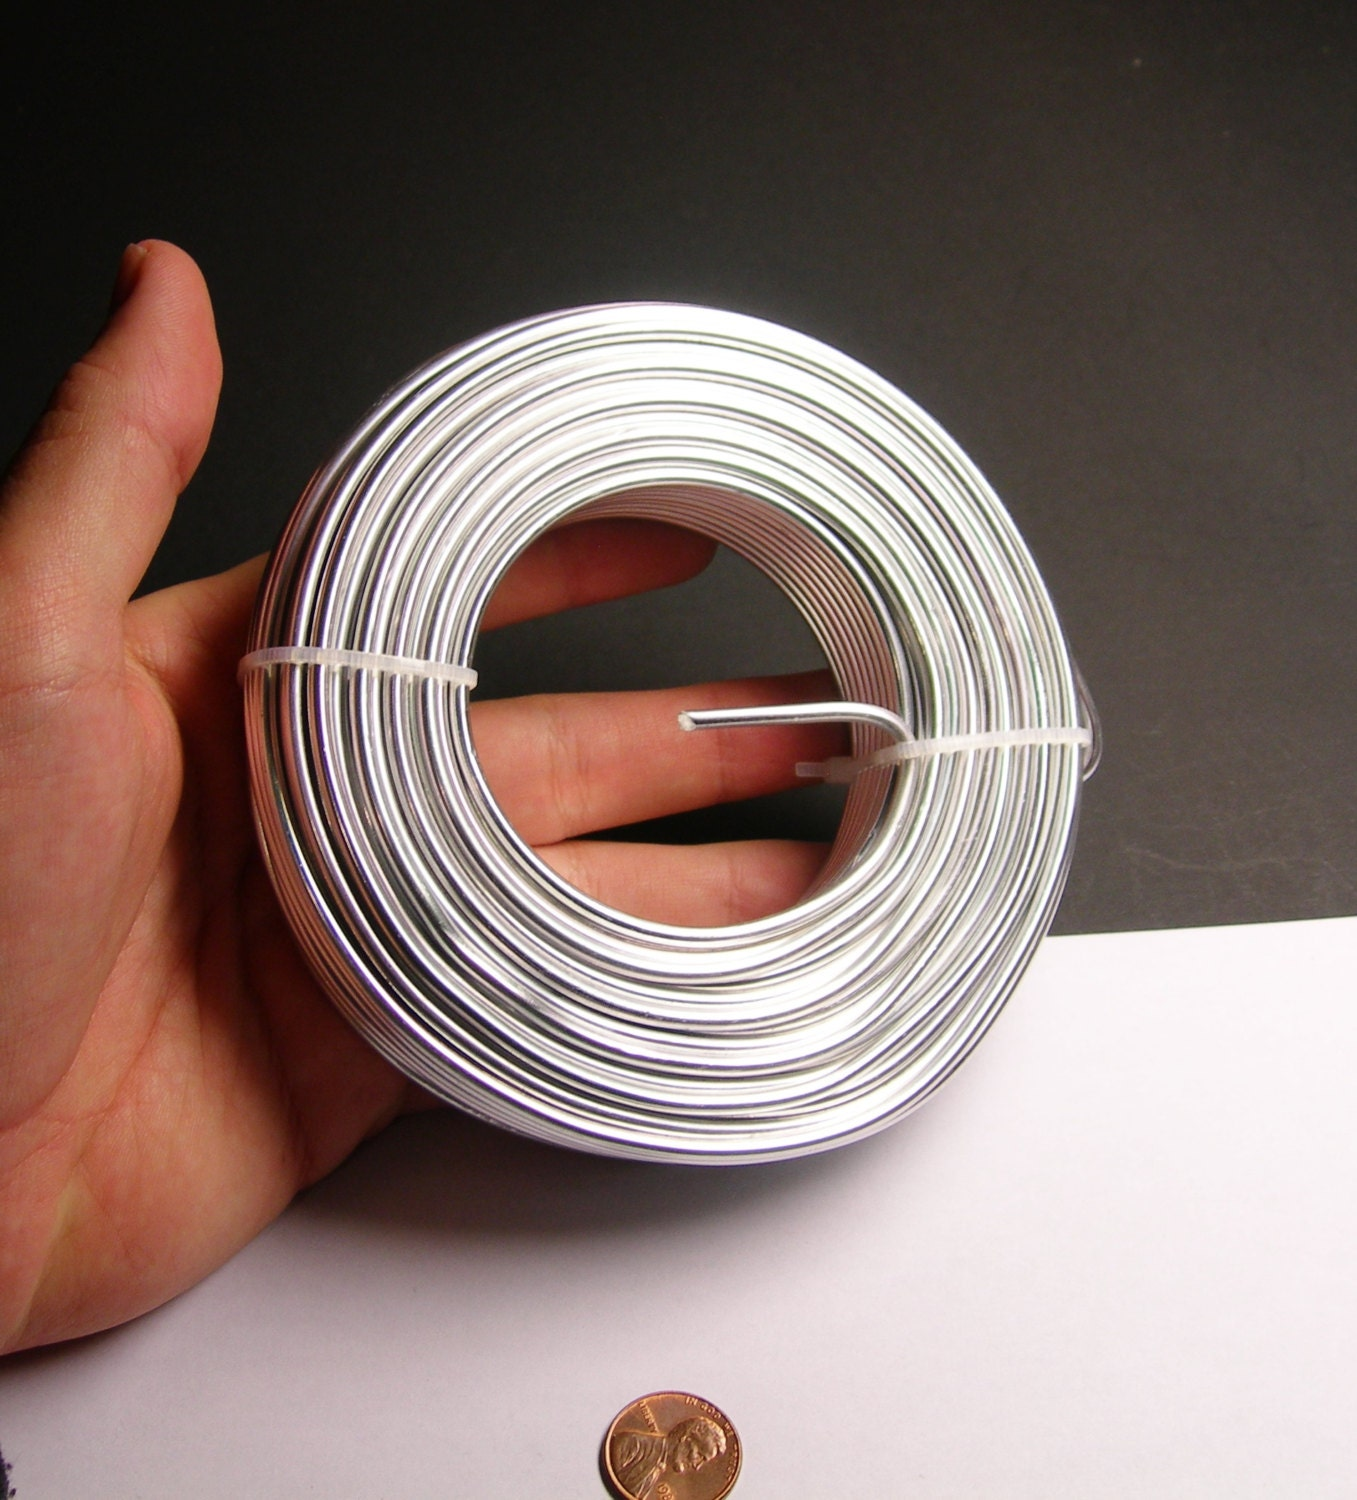 13 Gauge Aluminum Wire Center Ook 50 Ft Hobby Wire50176 The Home Depot 9 3mm 78 Foot Rool Good Quality Silver Rh Fallinlovegems Com Gage